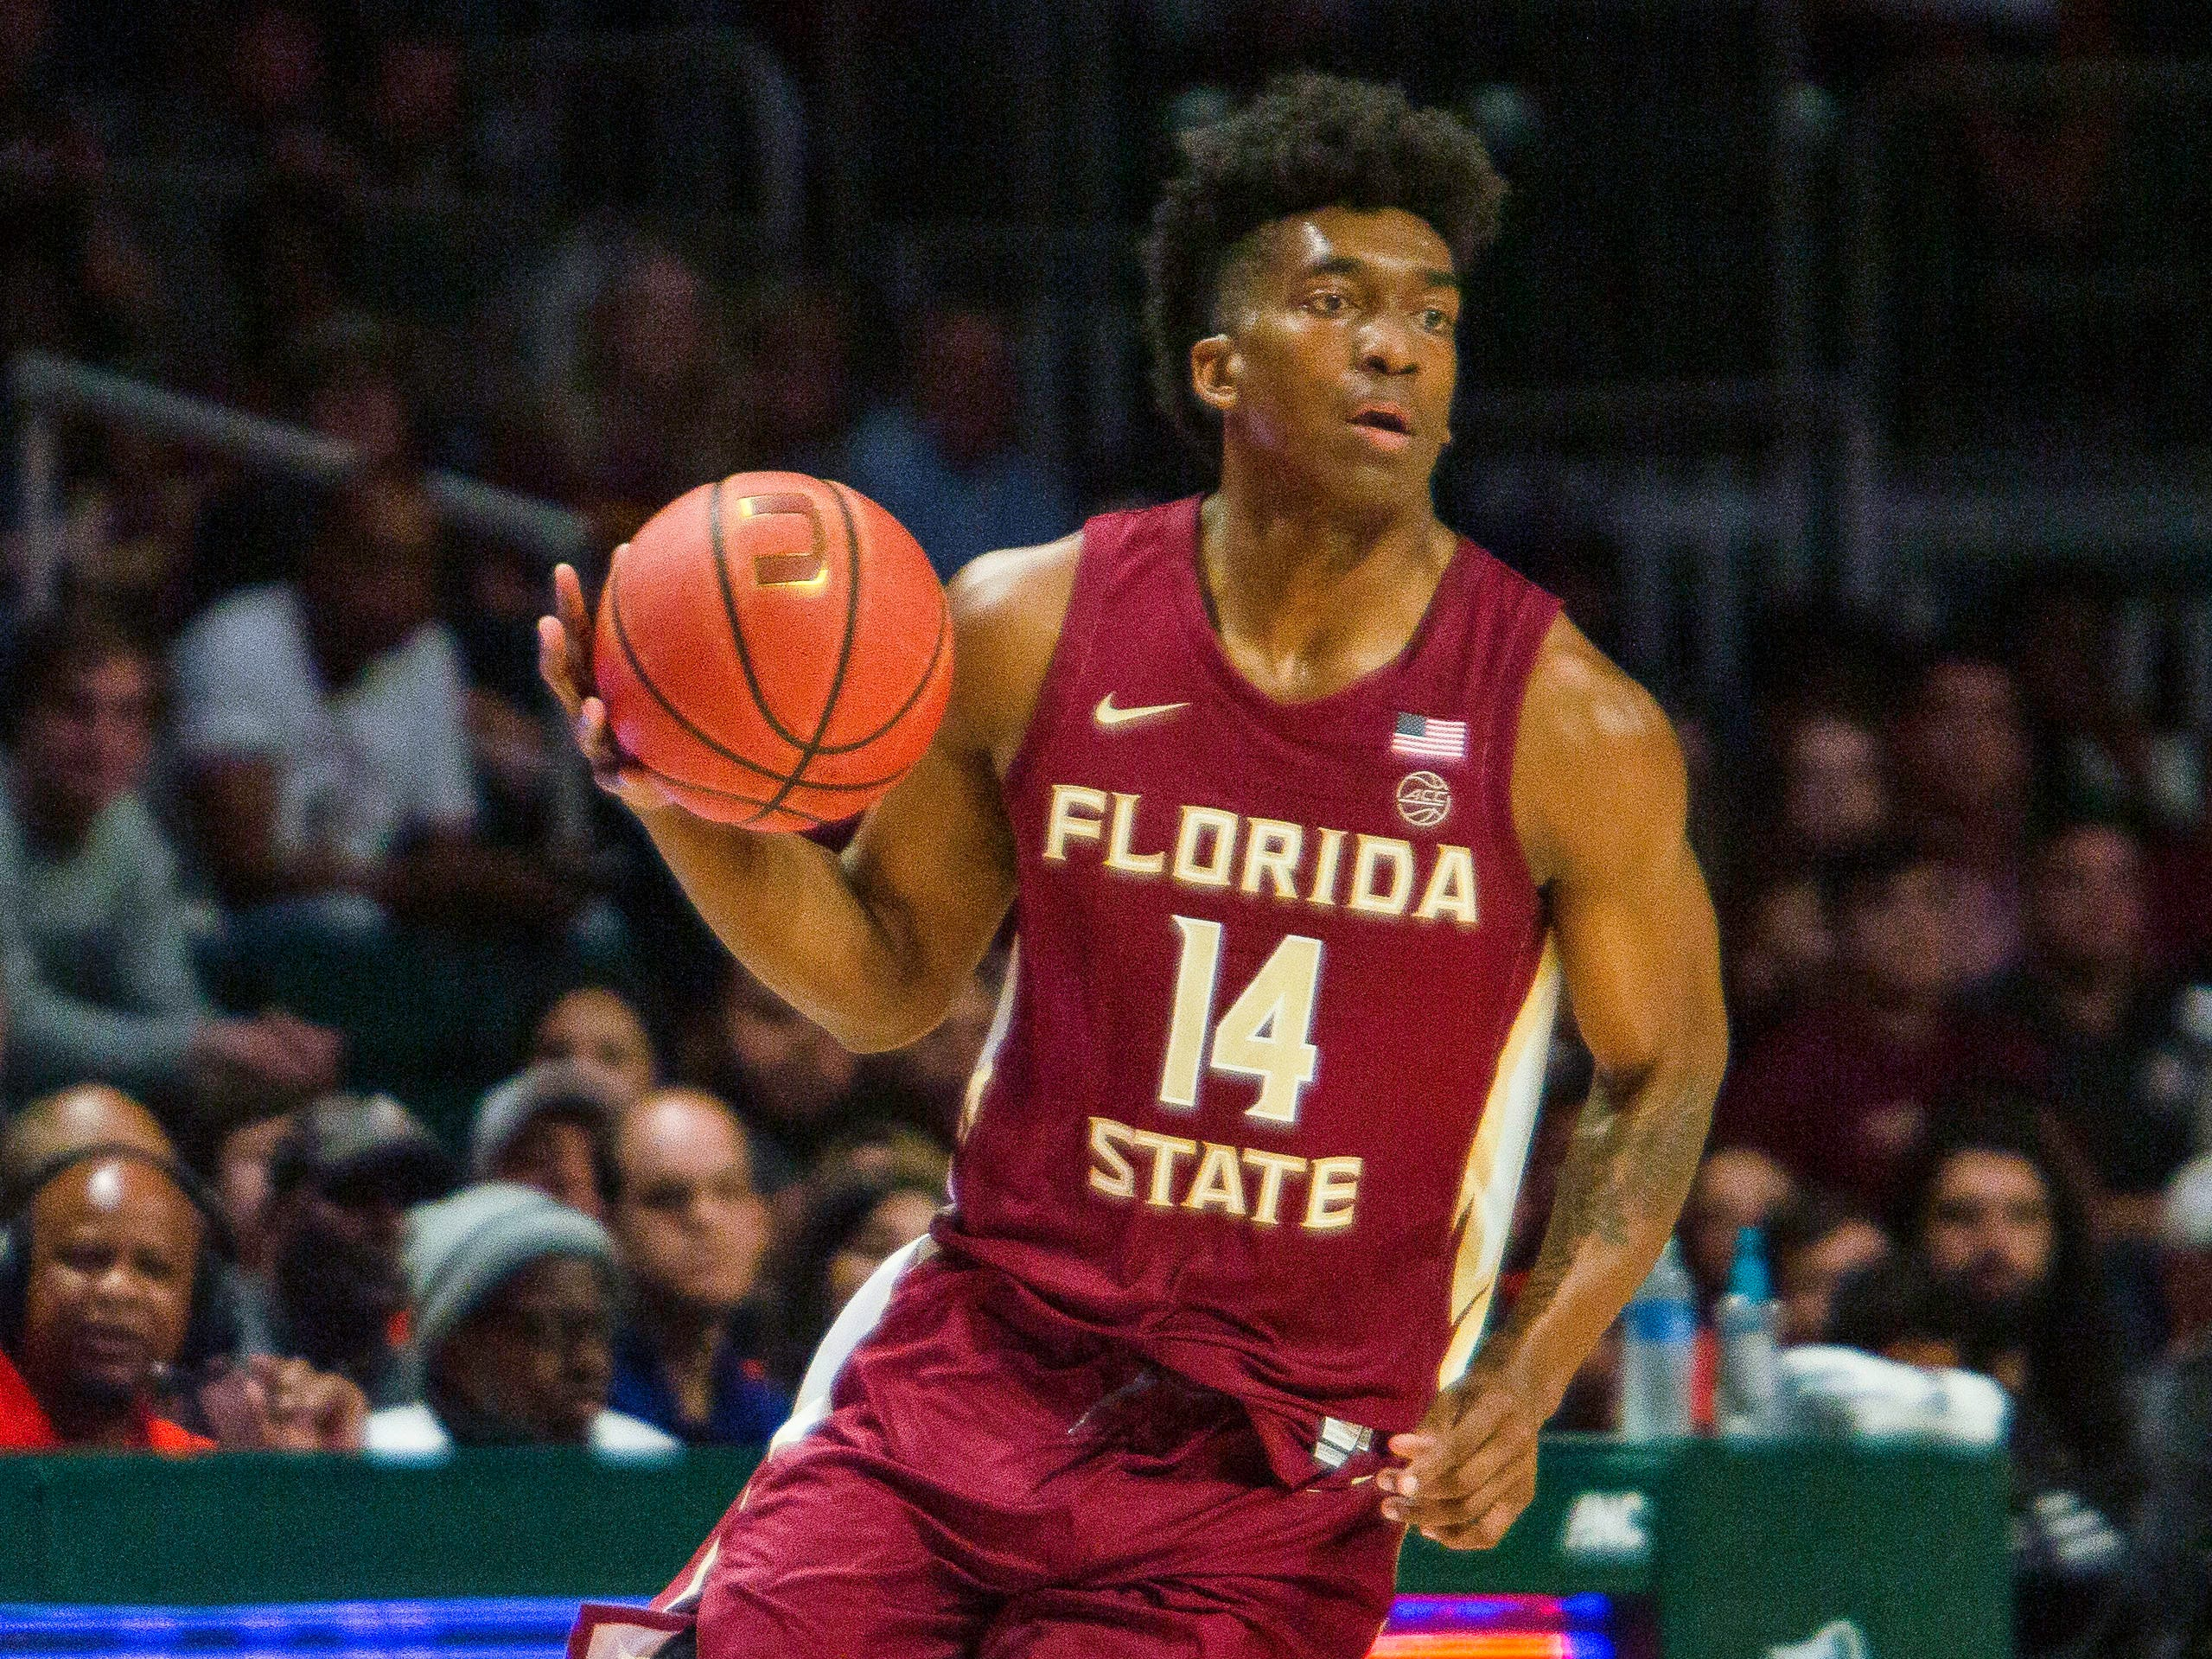 Florida State senior guard Terance Mann had 10 points and 10 rebounds against Miami on Sunday night.